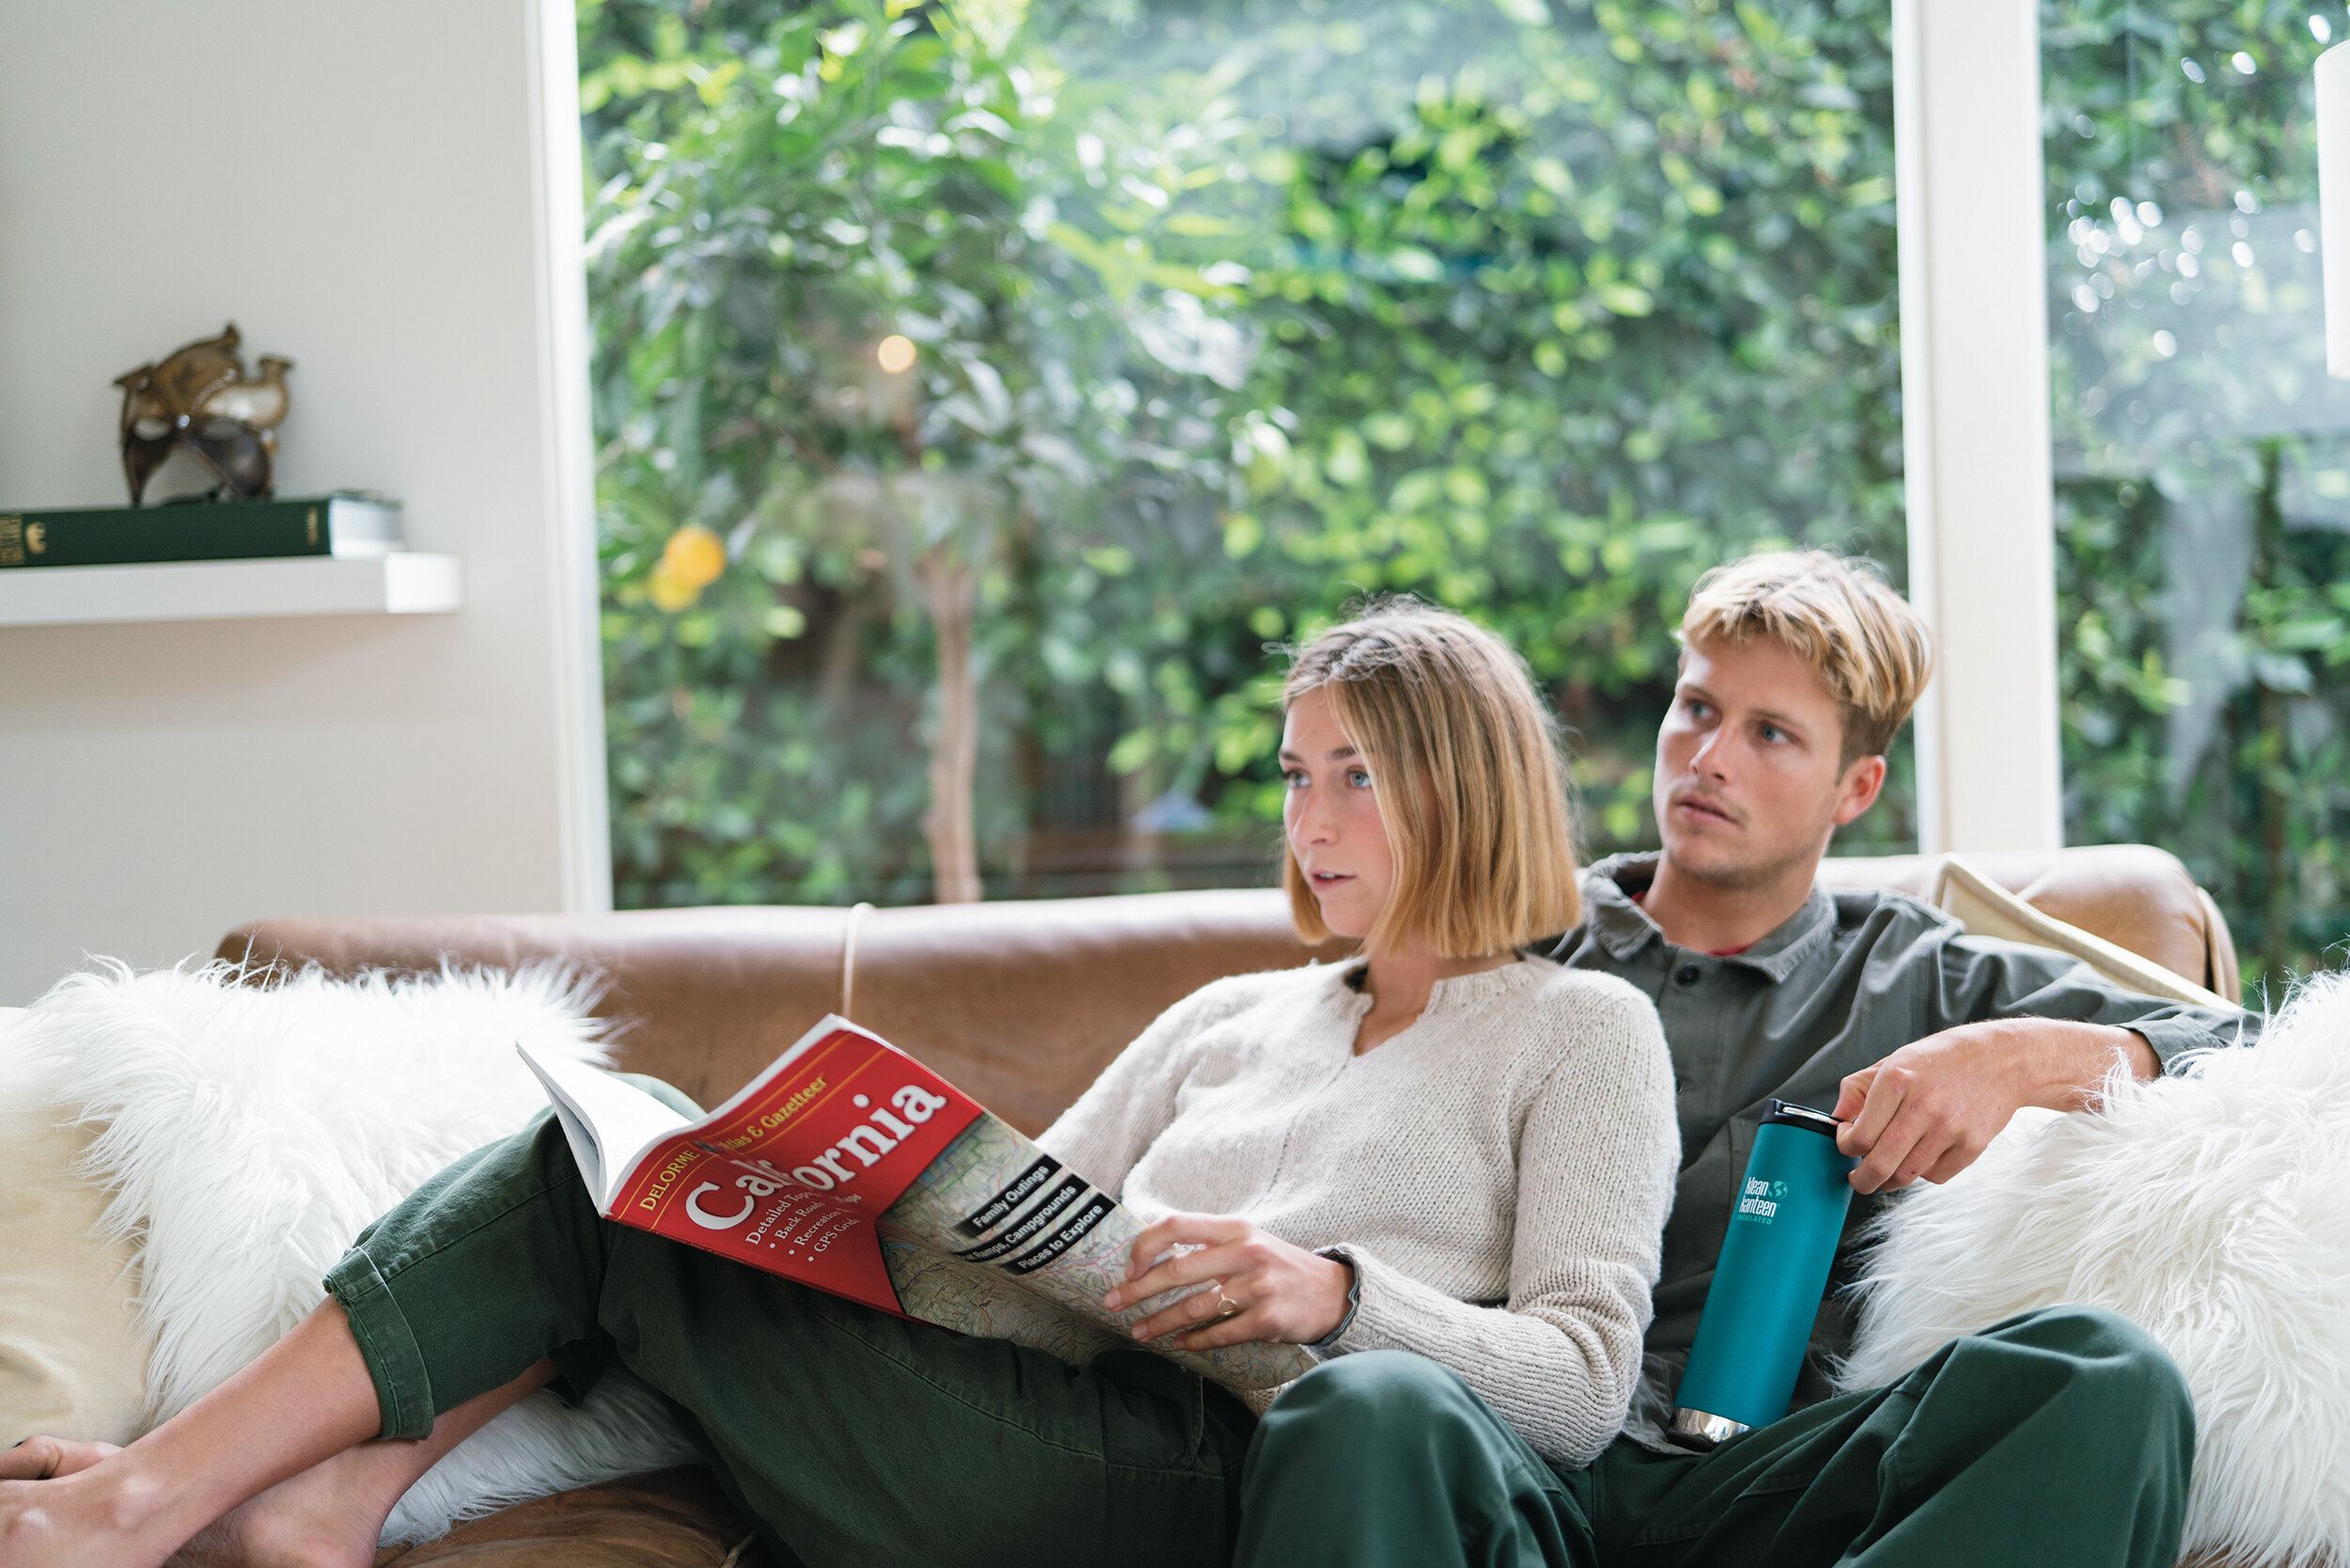 K20TKWPCC-EB-LS-Home-Couple Relaxing on Couch.jpg